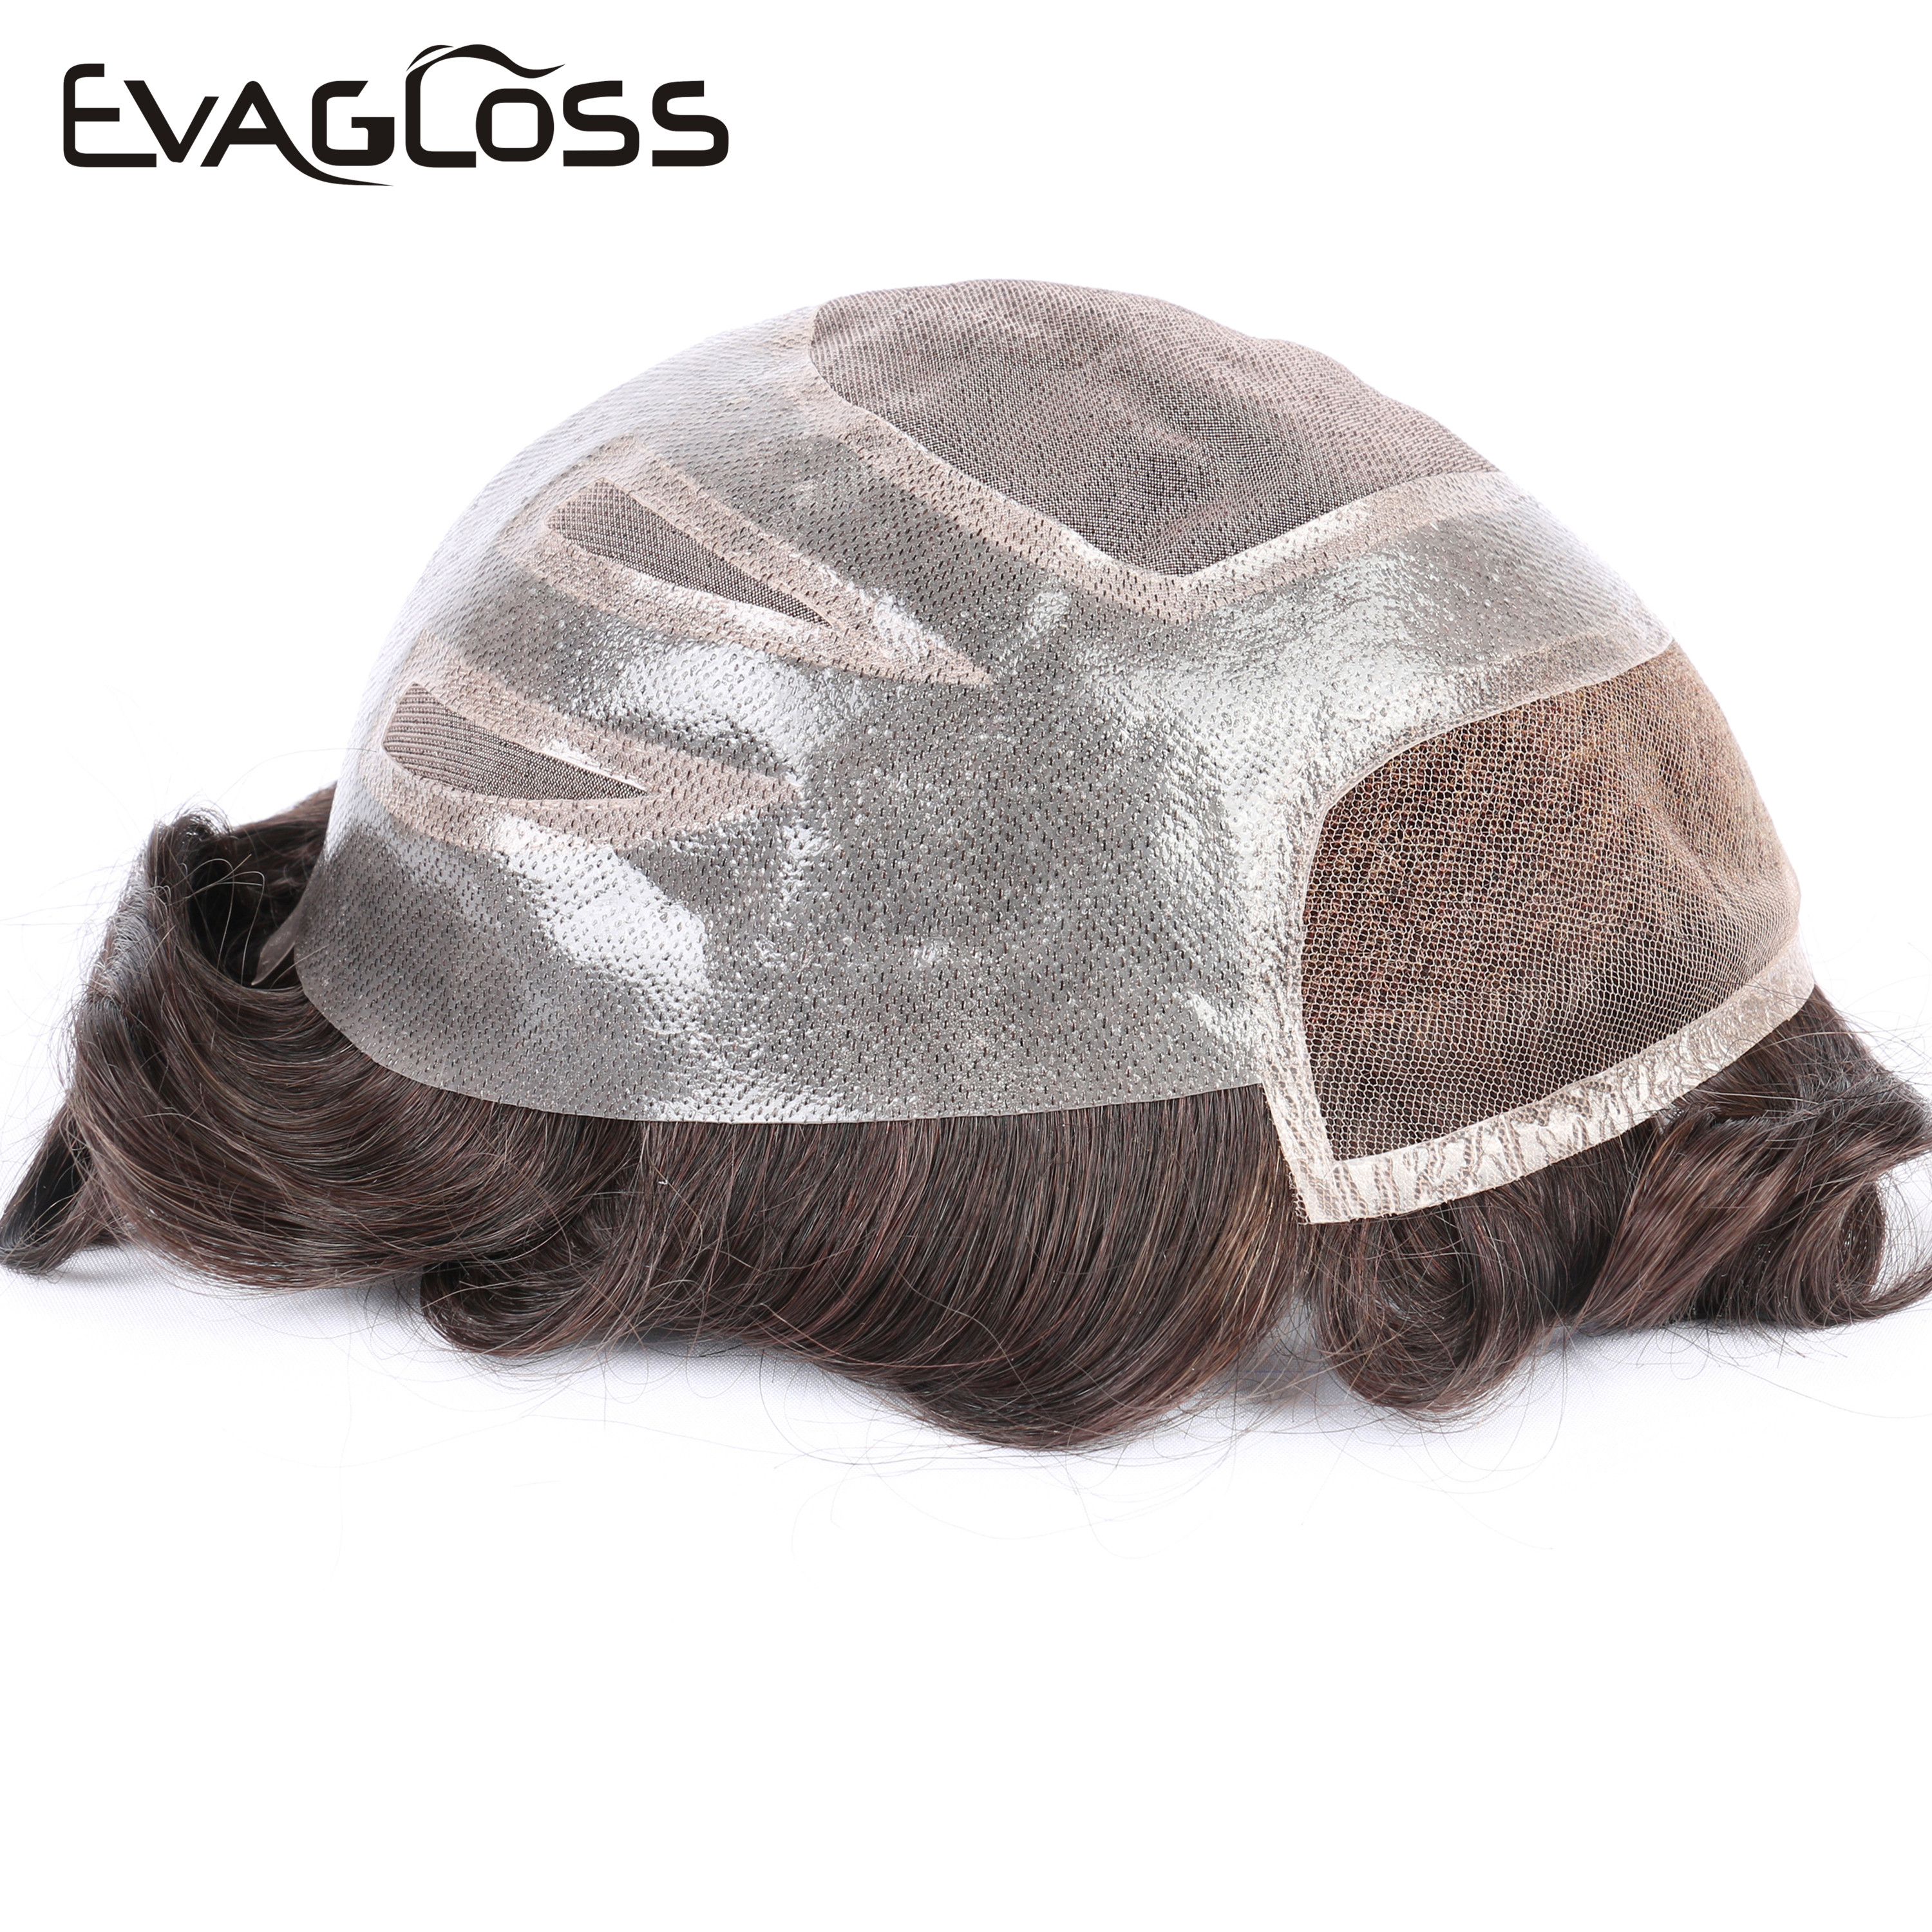 EVAGLOSS VERSALITE Style Indian Human Hair Swiss Lace Mono Men Wig Hair Toupee For Men Real Human Hair Pieces Replacement System